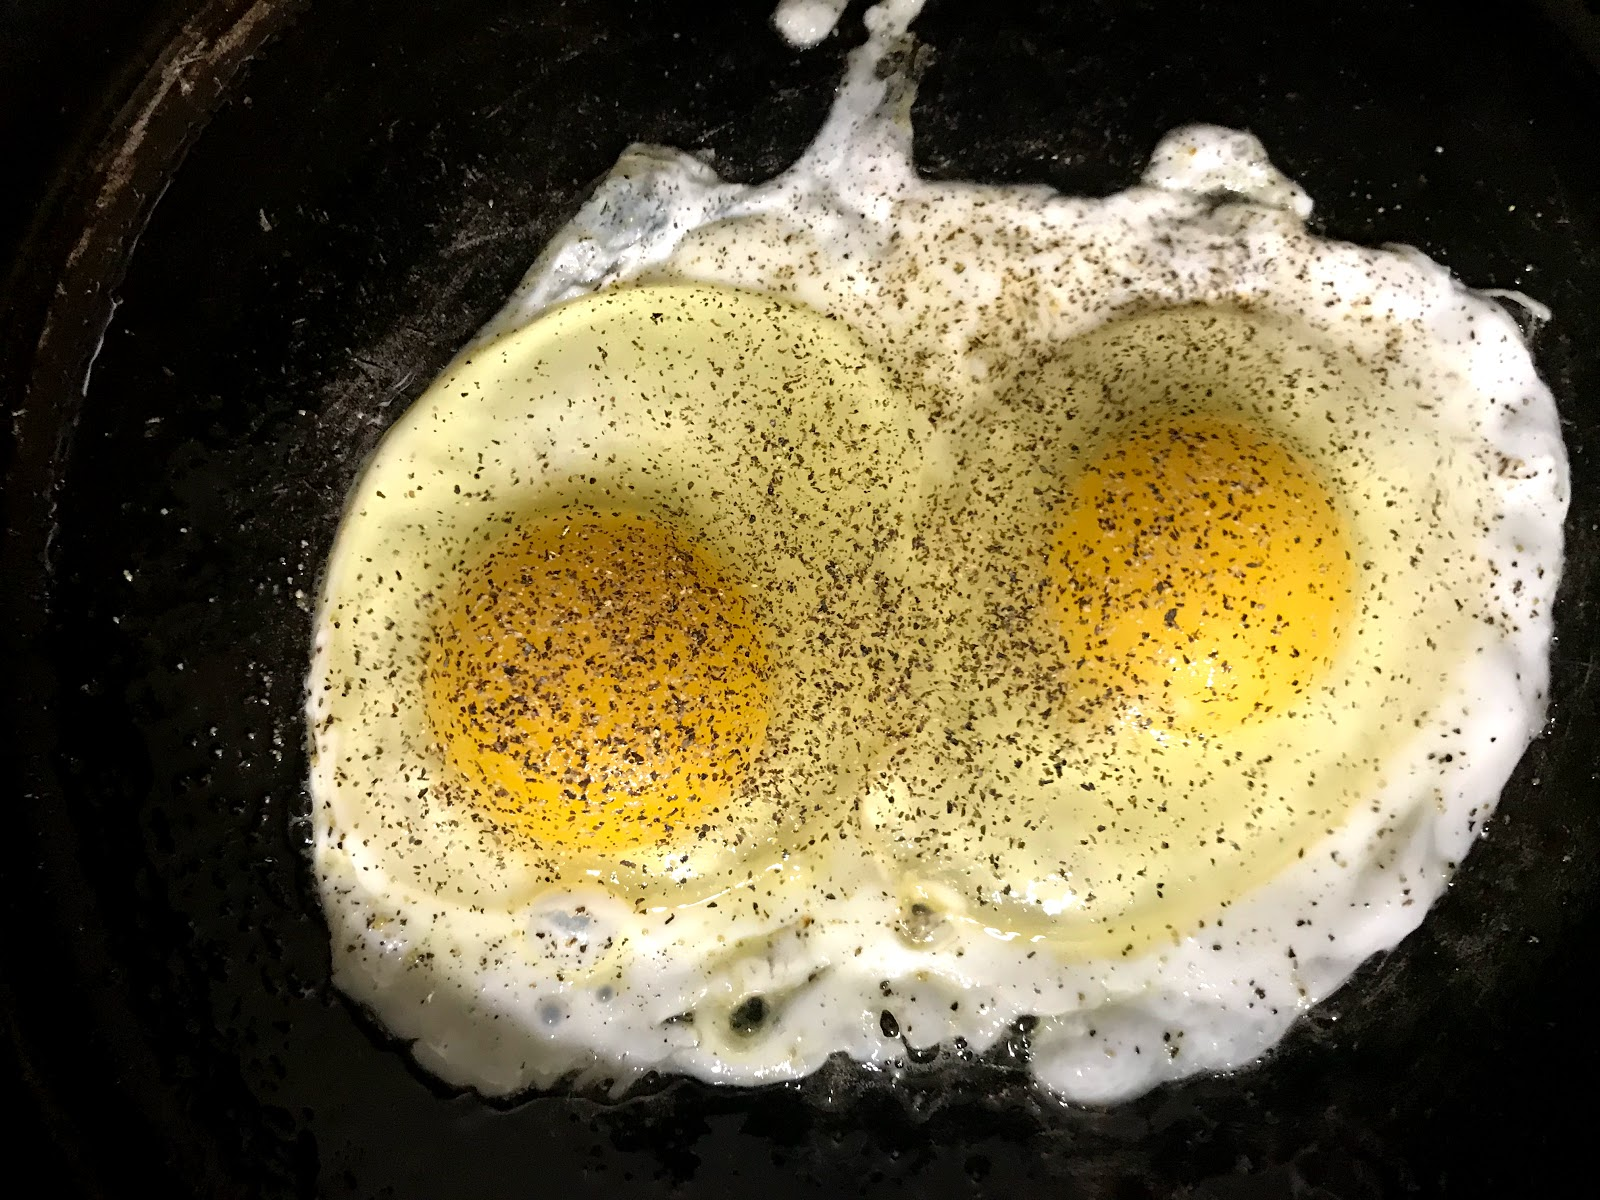 Image: Fried egg in a pan